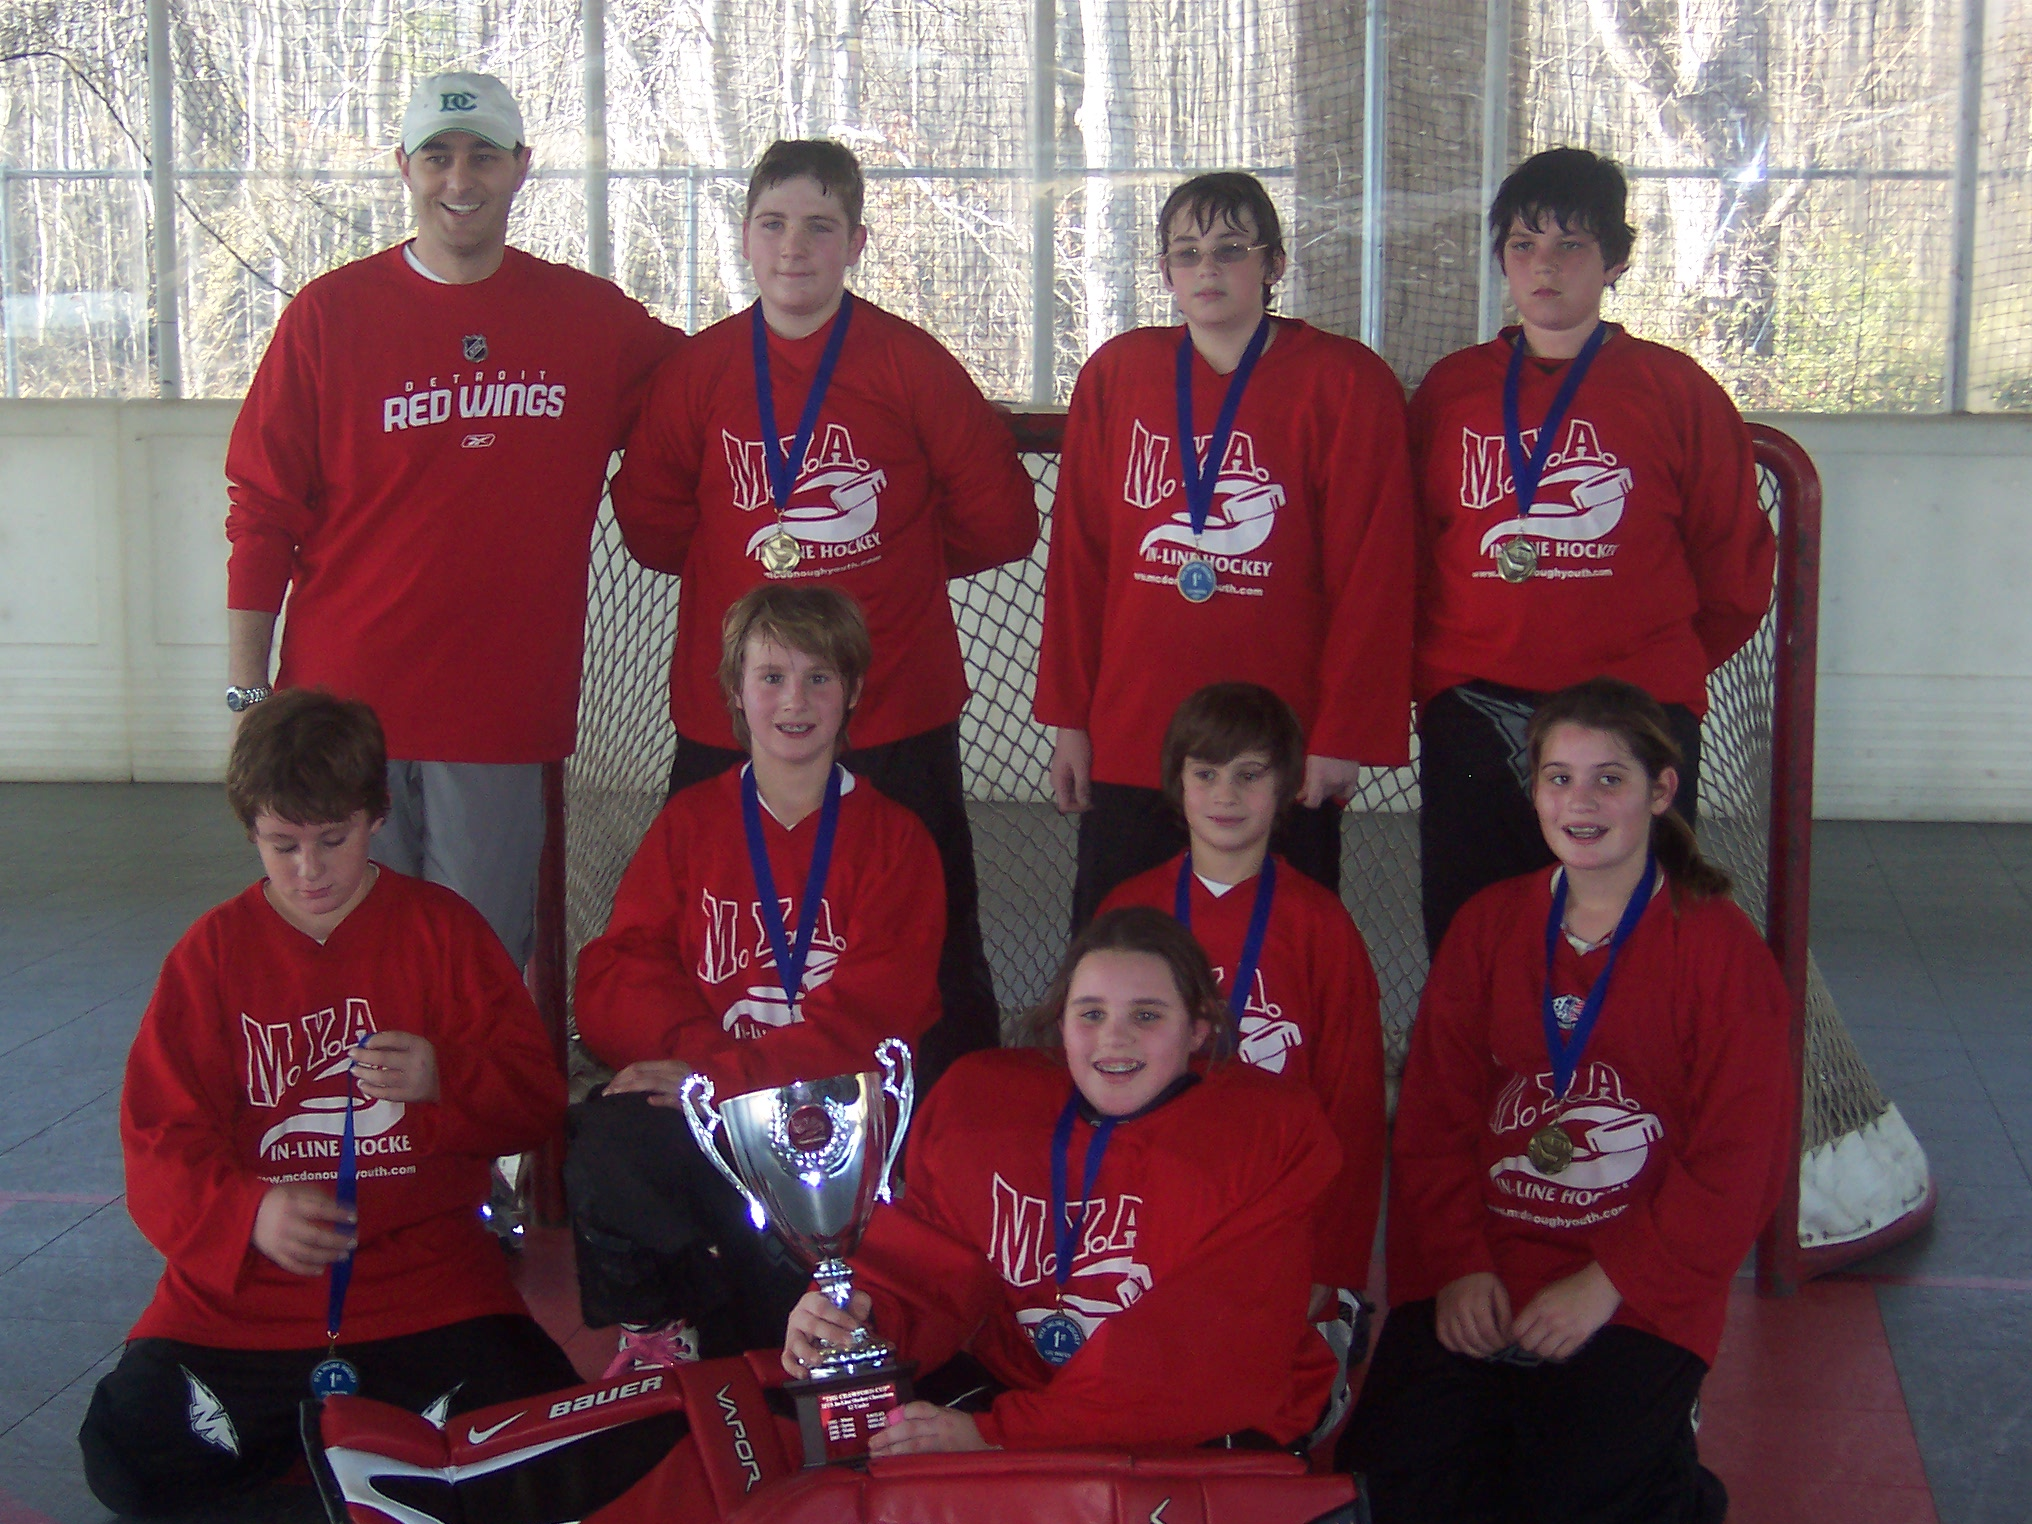 Champions 2007 Fall MH Red Wings